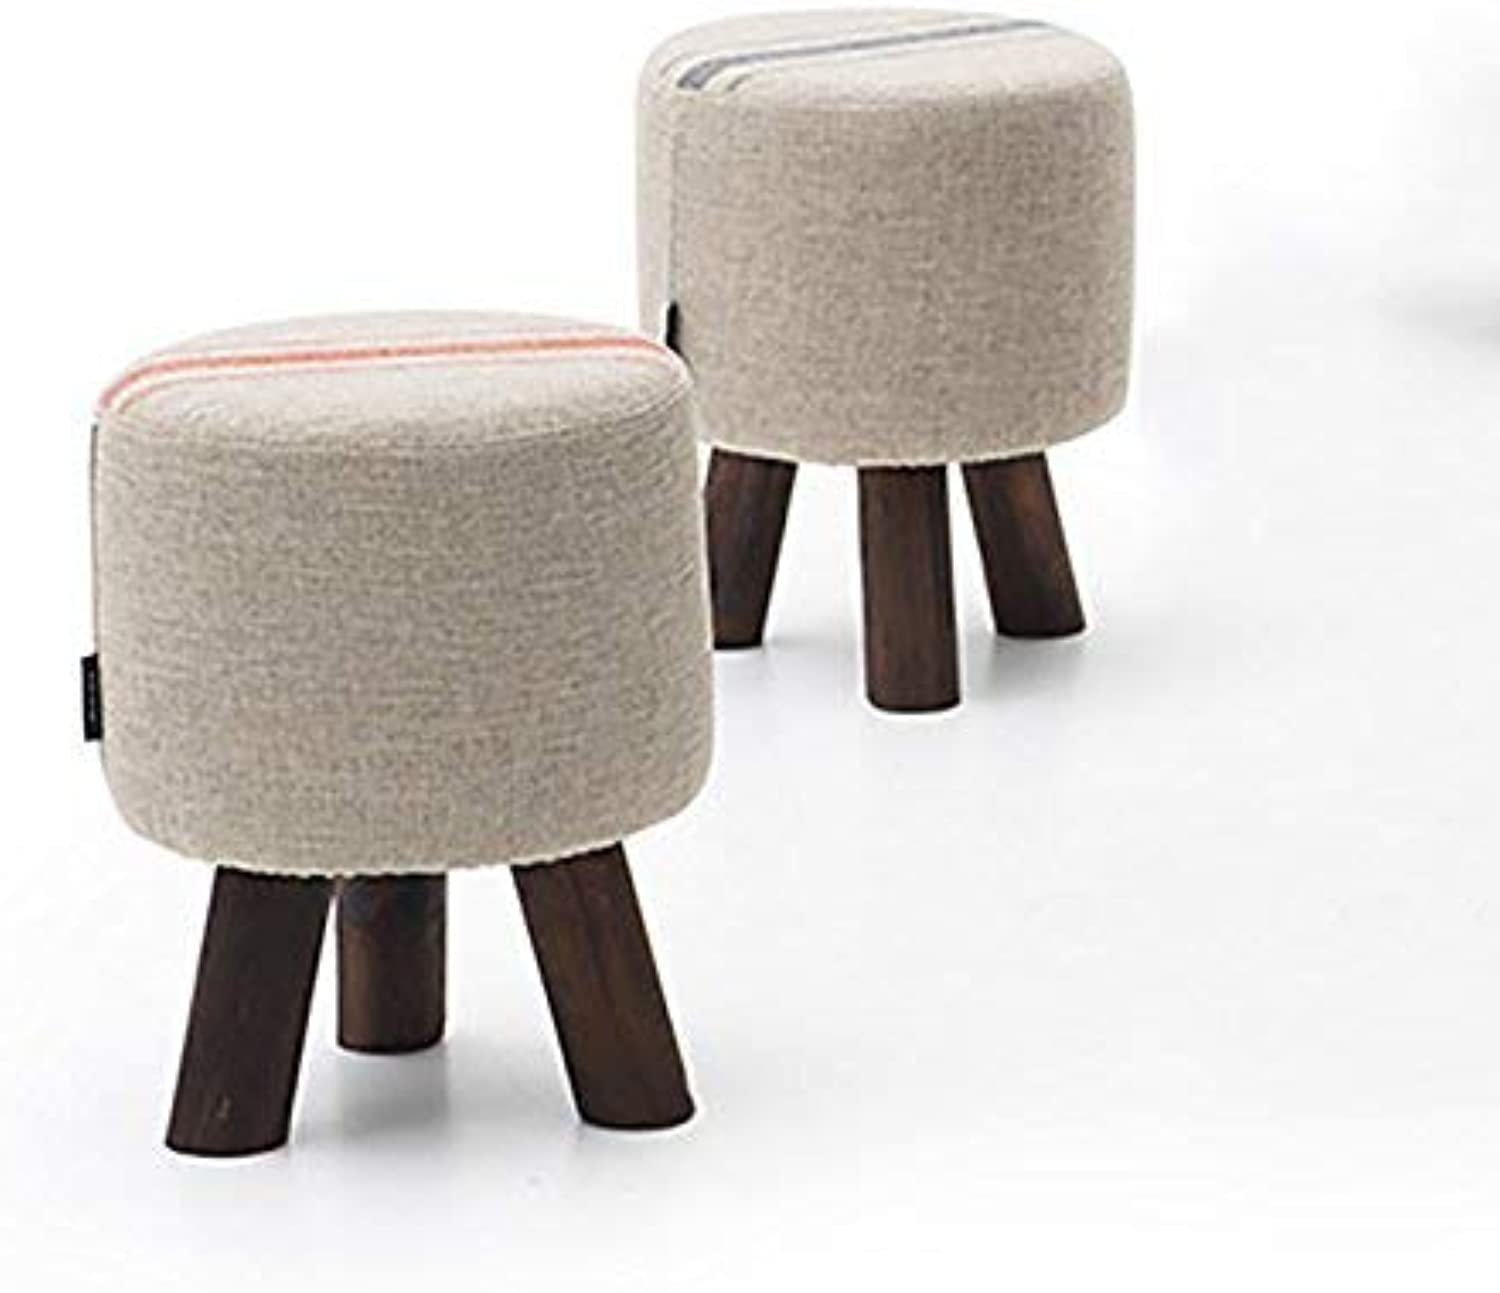 JZX Solid Wood shoes Bench, Living Room Footstool